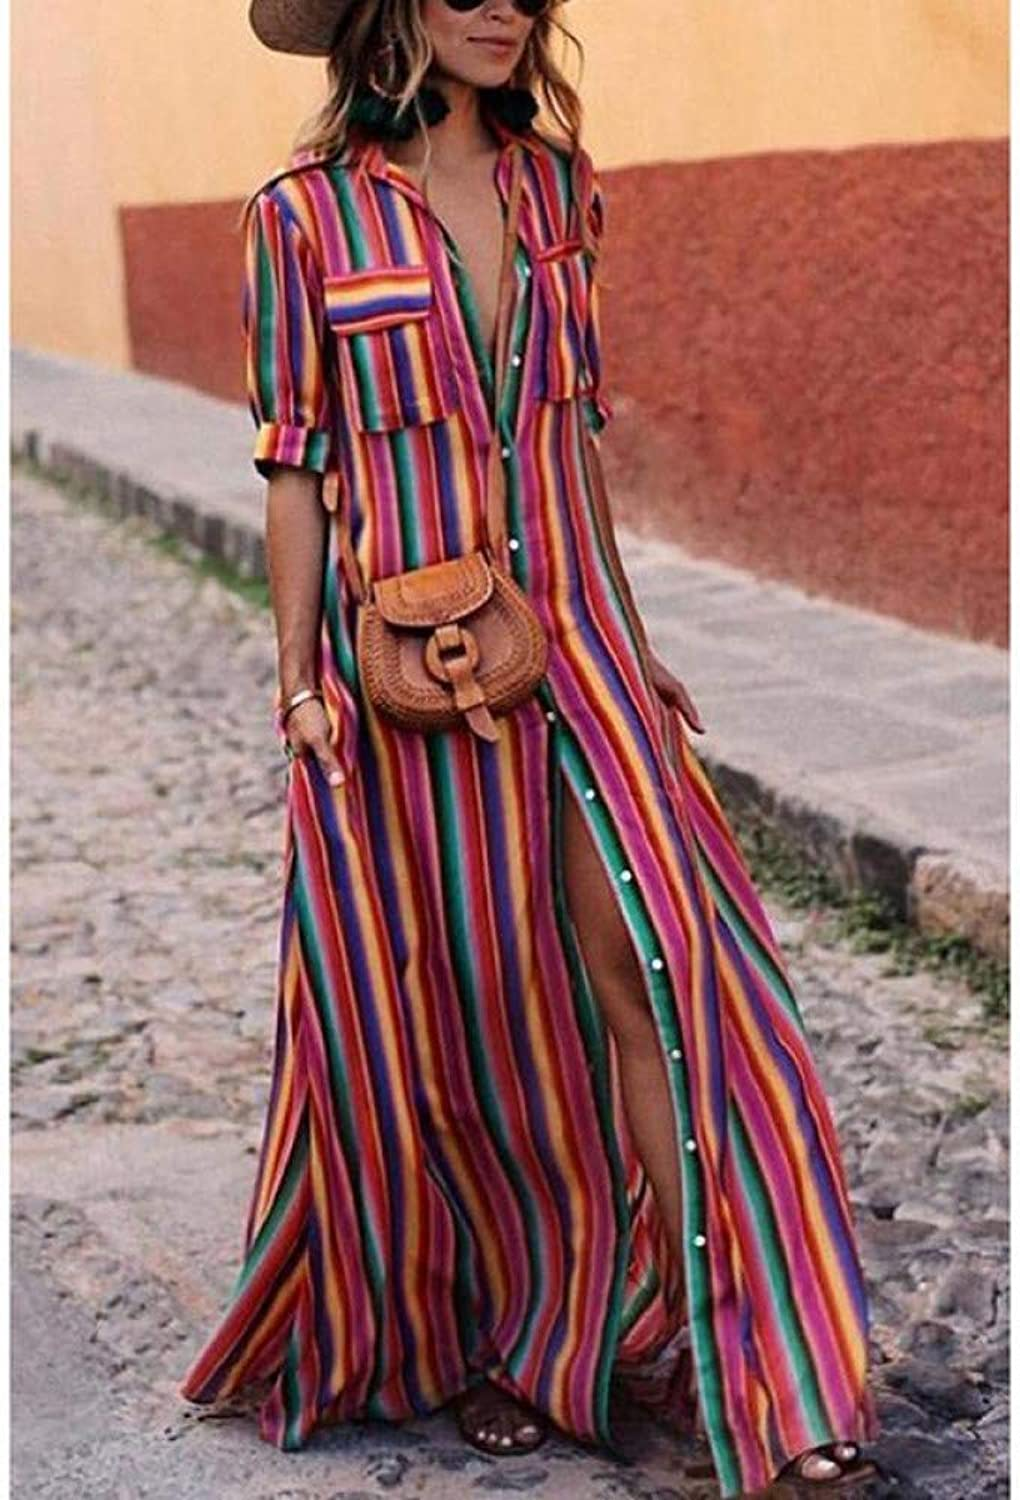 Cxlyq Dresses colorful Red color Print Dress Long Skirt Loose Casual color Striped Shirt Strap Dress